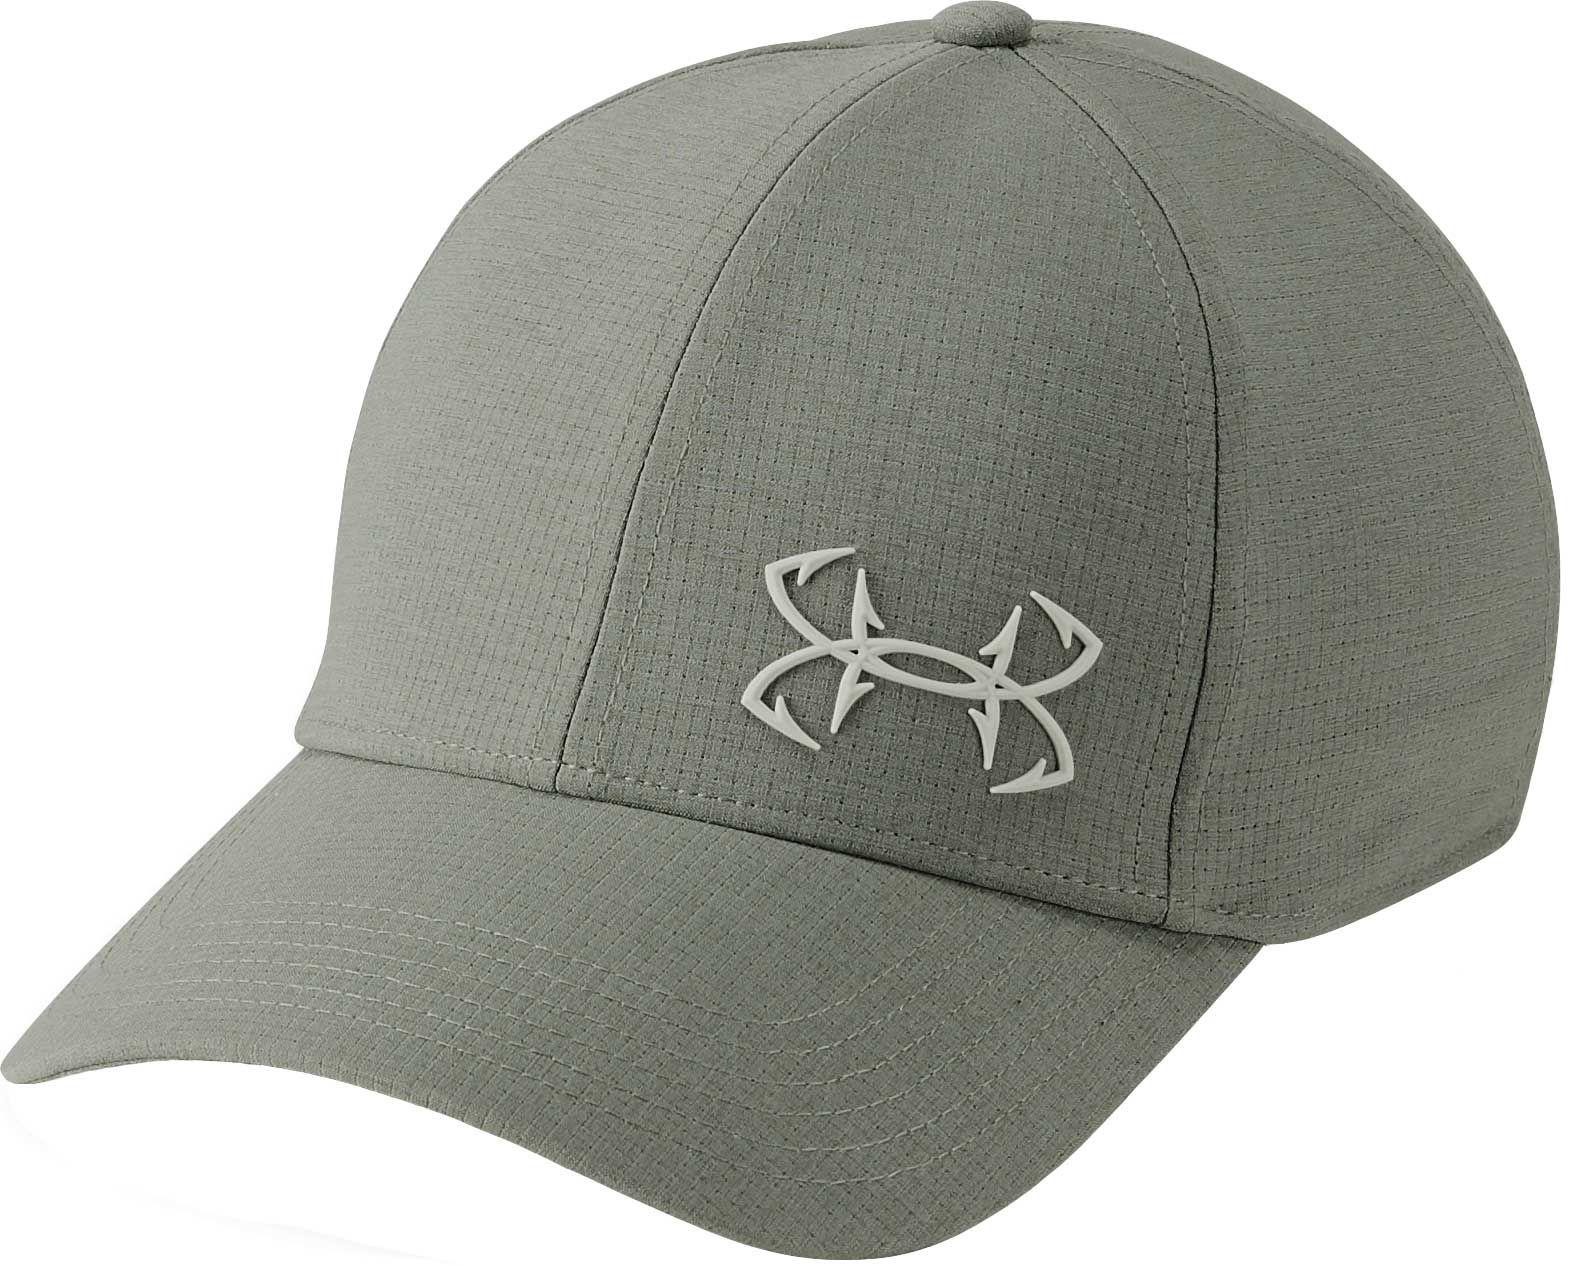 8a67eb94cdf Under Armour - Green Coolswitch Armourvent Fishing Hat for Men - Lyst. View  fullscreen